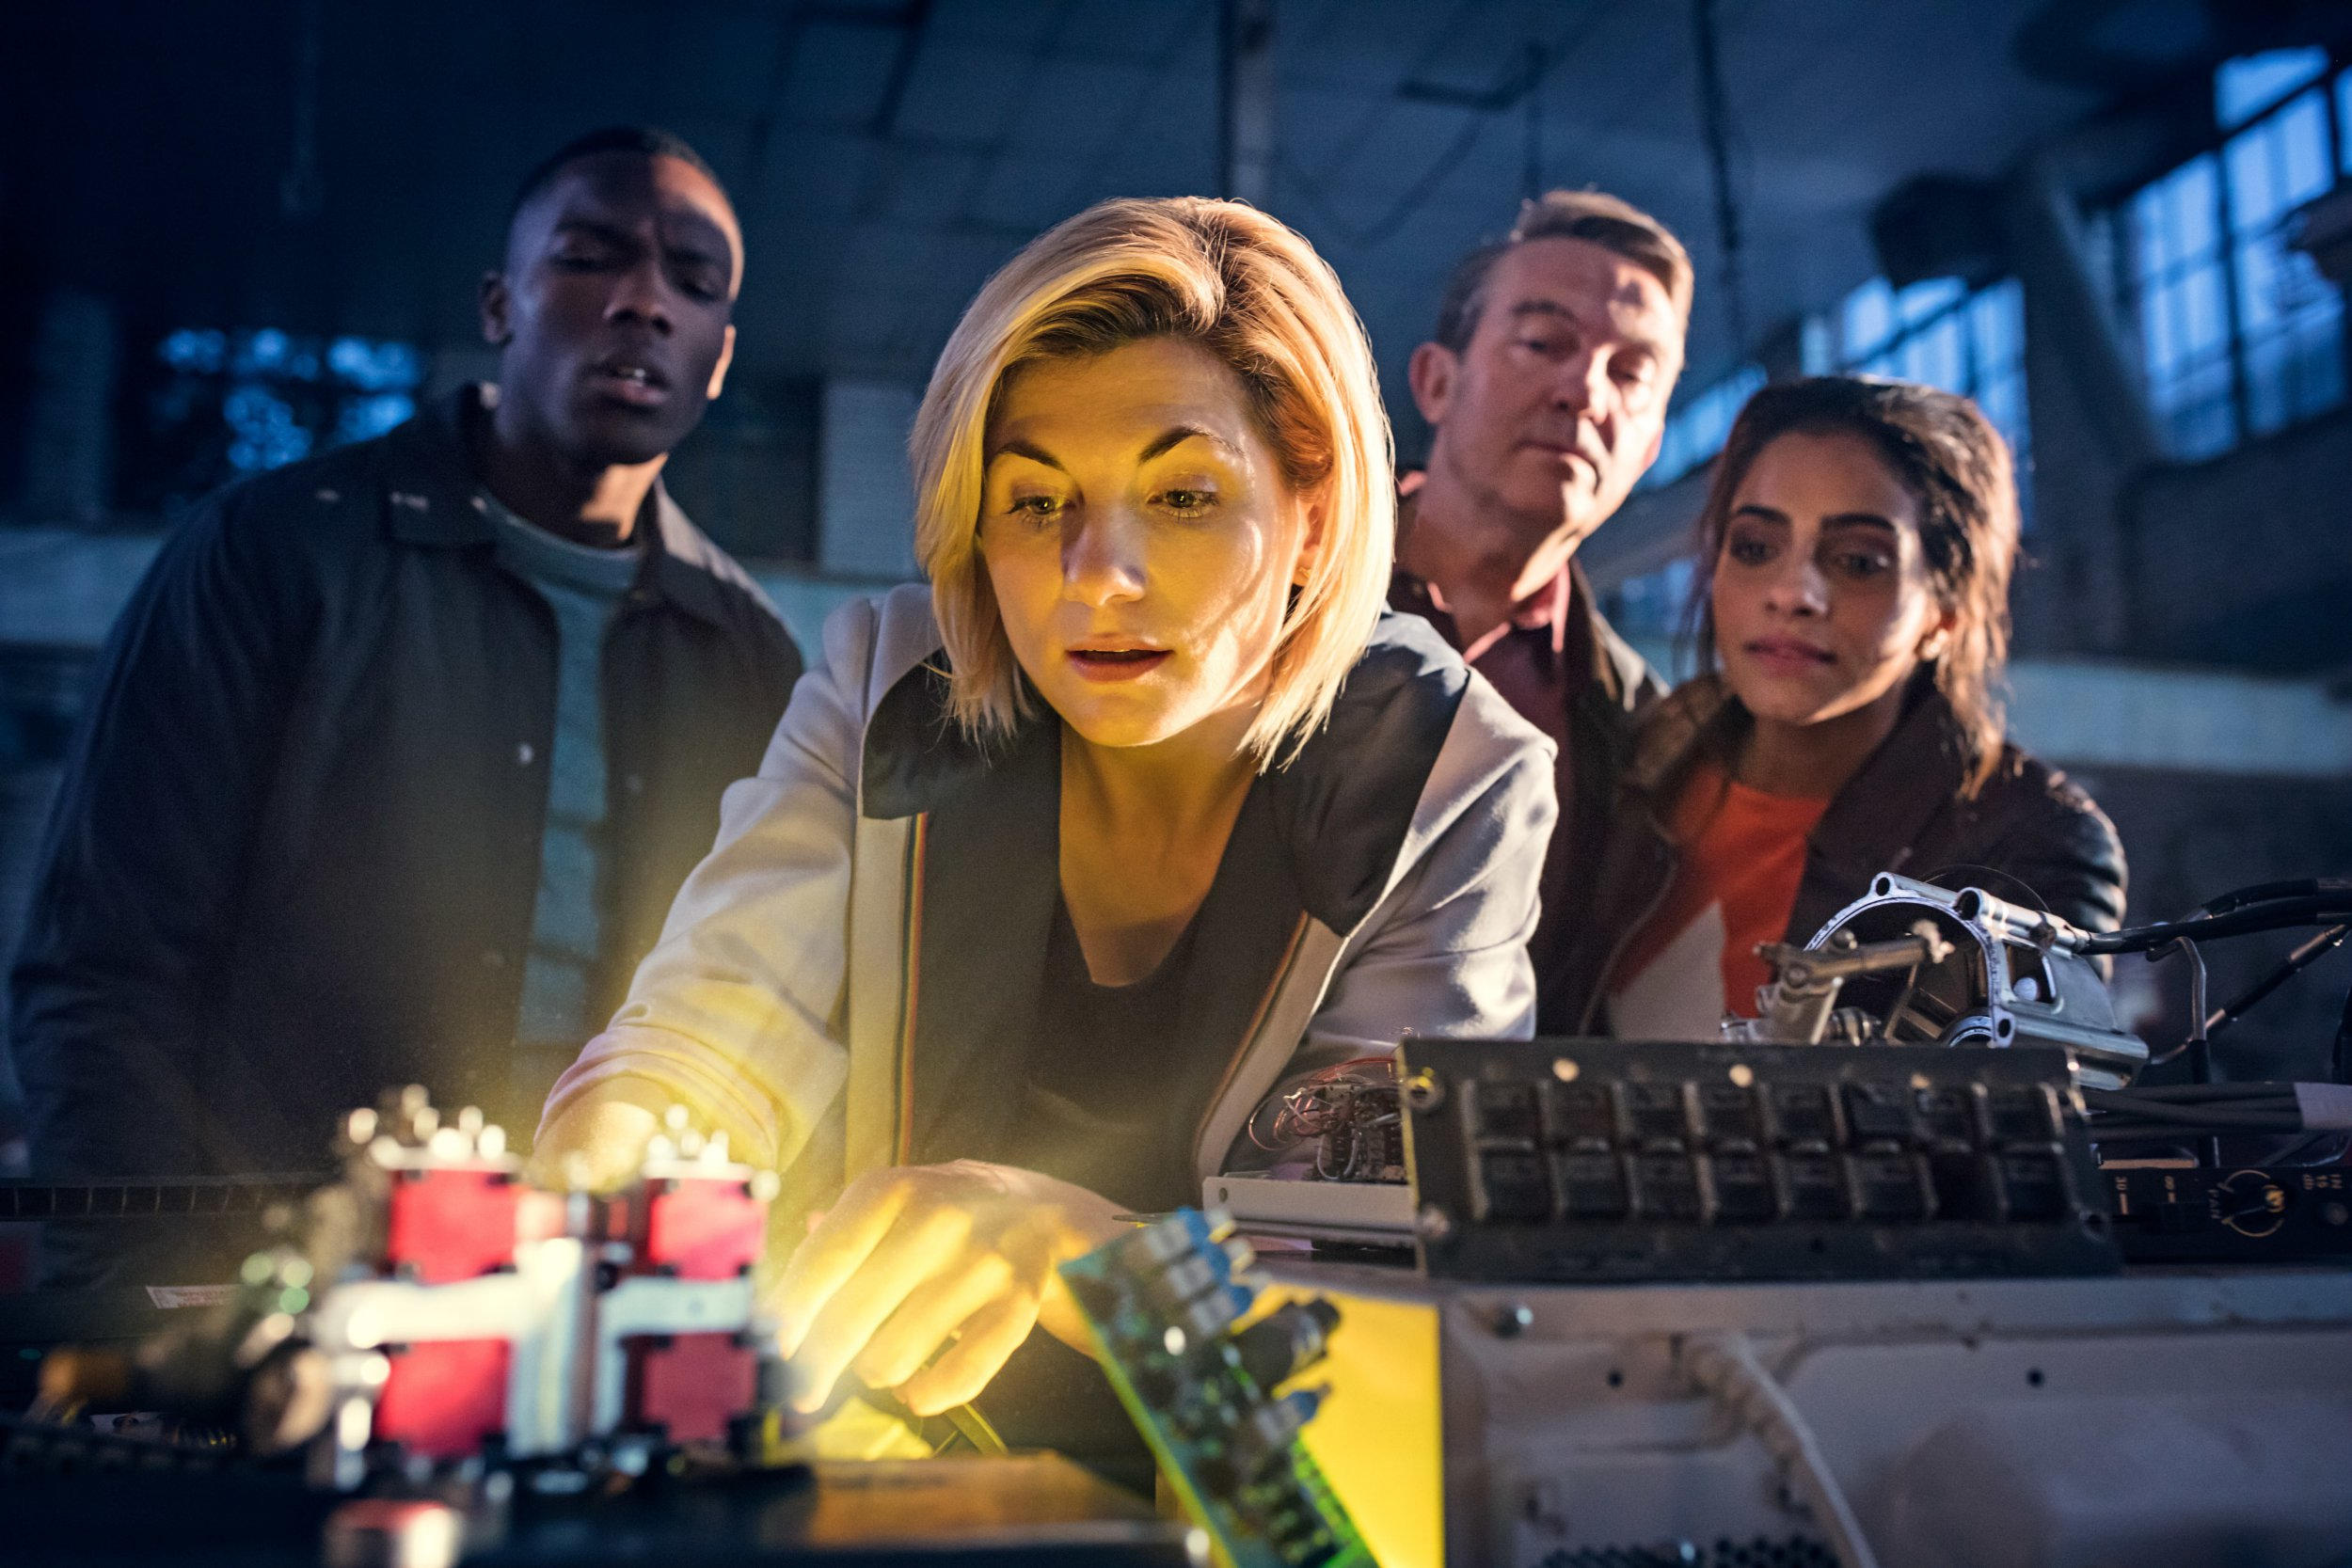 "Embargoed to 0001 Tuesday July 17 For use in UK, Ireland or Benelux countries only Undated BBC handout photo of Jodie Whittaker as The Doctor (centre), Bradley Walsh as Graham (second right) and Mandip Gill as Yaz (first right). Whittaker has said it is a ""huge honour"" to be able to show children that their television heroes can look different, and to let girls know that they can play Doctor Who's leading character. PRESS ASSOCIATION Photo. Issue date: Tuesday July 17, 2018. The actress will take on the role of the Doctor in Doctor Who later this year, making history as the first woman to ever play the role. See PA story SHOWBIZ Who. Photo credit should read: Sophie Mutevelian/BBC/PA Wire NOTE TO EDITORS: Not for use more than 21 days after issue. You may use this picture without charge only for the purpose of publicising or reporting on current BBC programming, personnel or other BBC output or activity within 21 days of issue. Any use after that time MUST be cleared through BBC Picture Publicity. Please credit the image to the BBC and any named photographer or independent programme maker, as described in the caption."